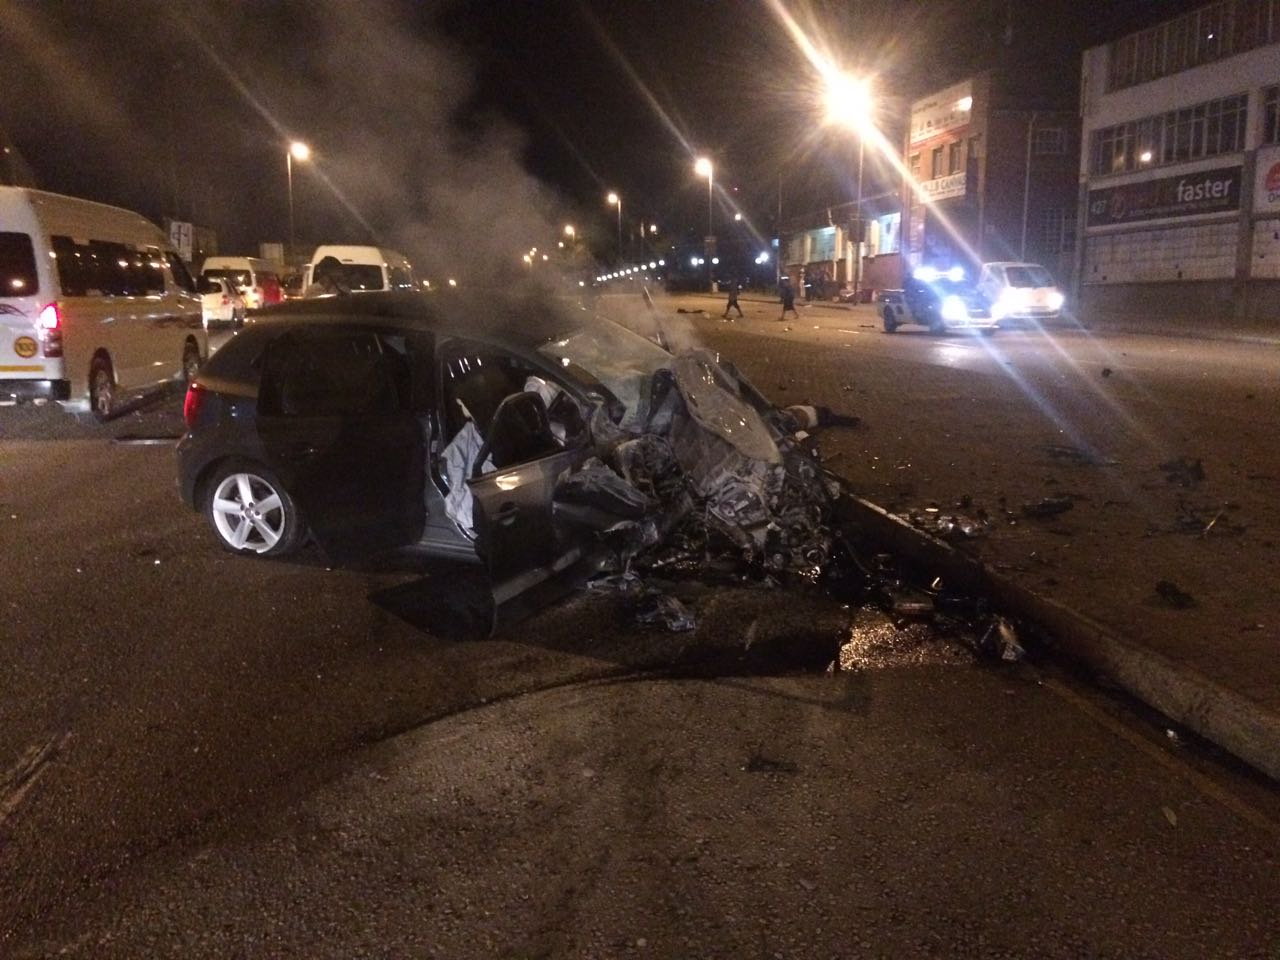 The vehicle collided head-on with a taxi. PHOTO: Crisis Medical